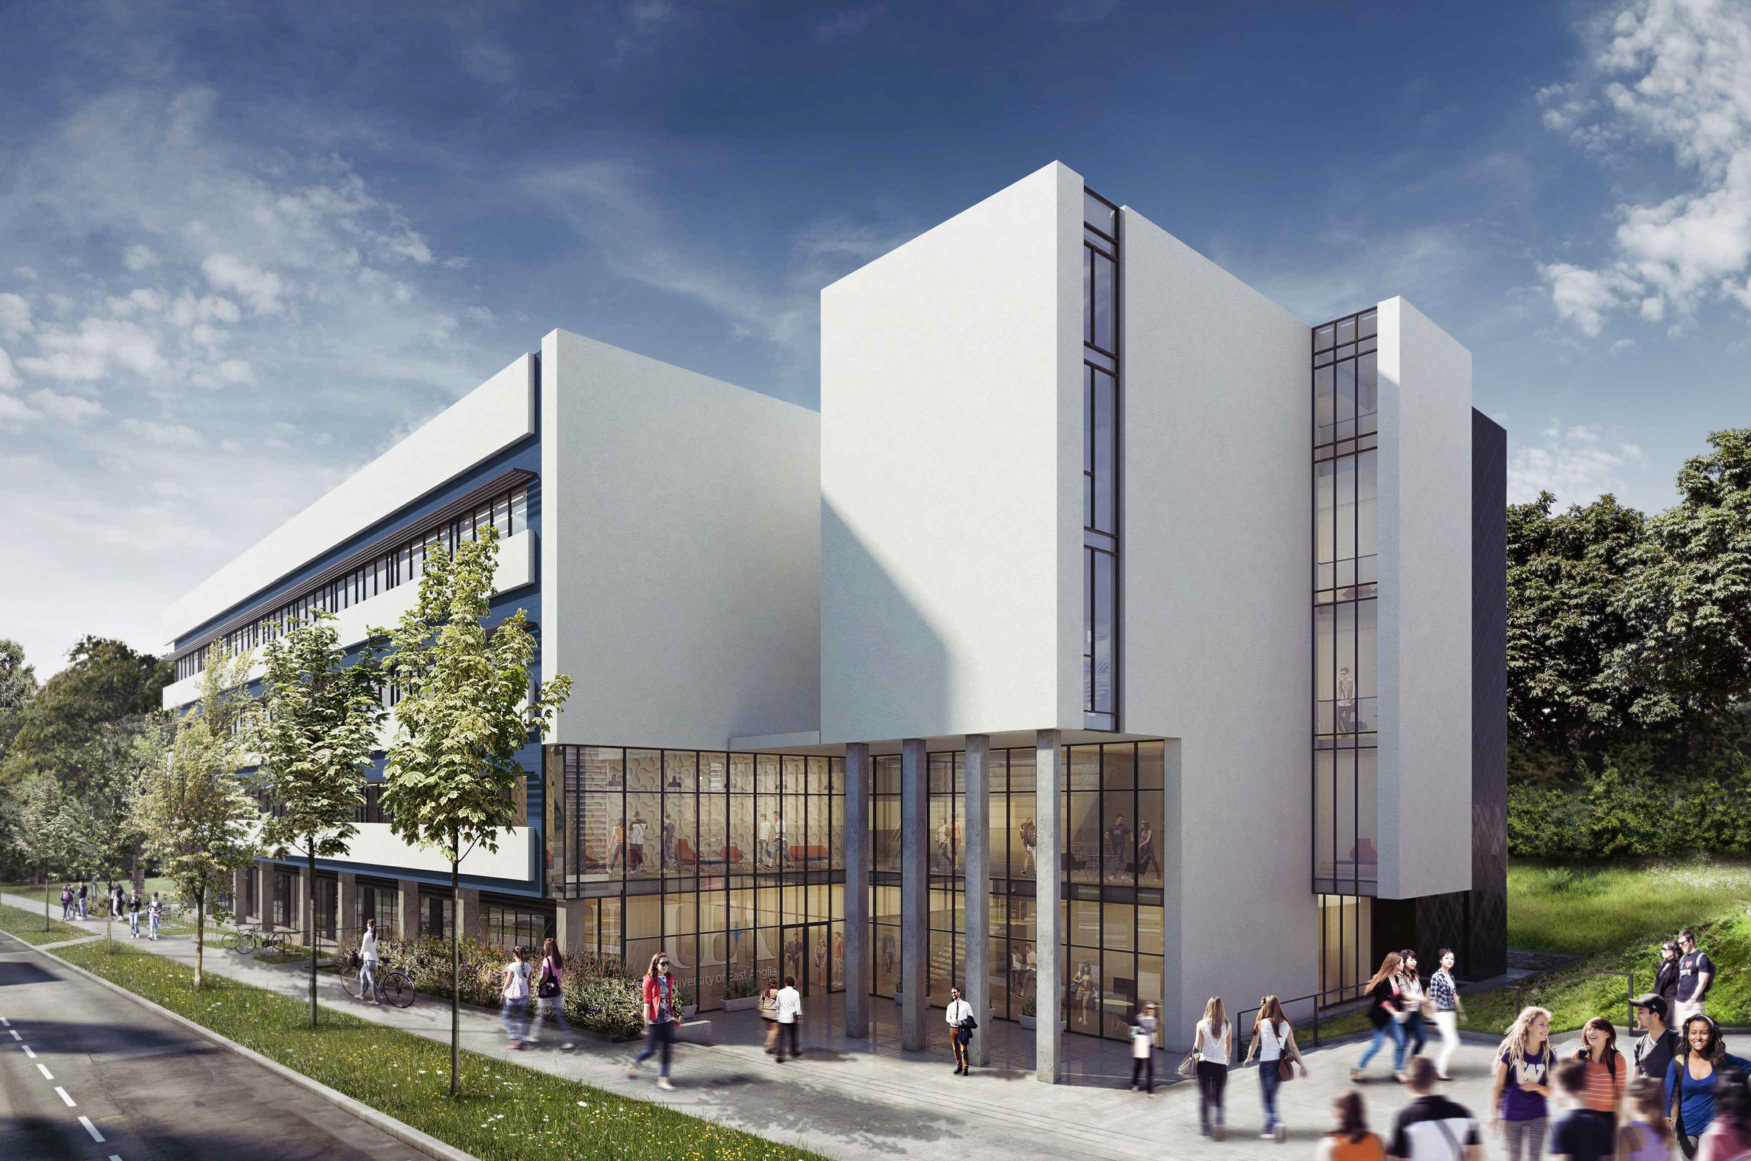 Building for the future at the University of East Anglia